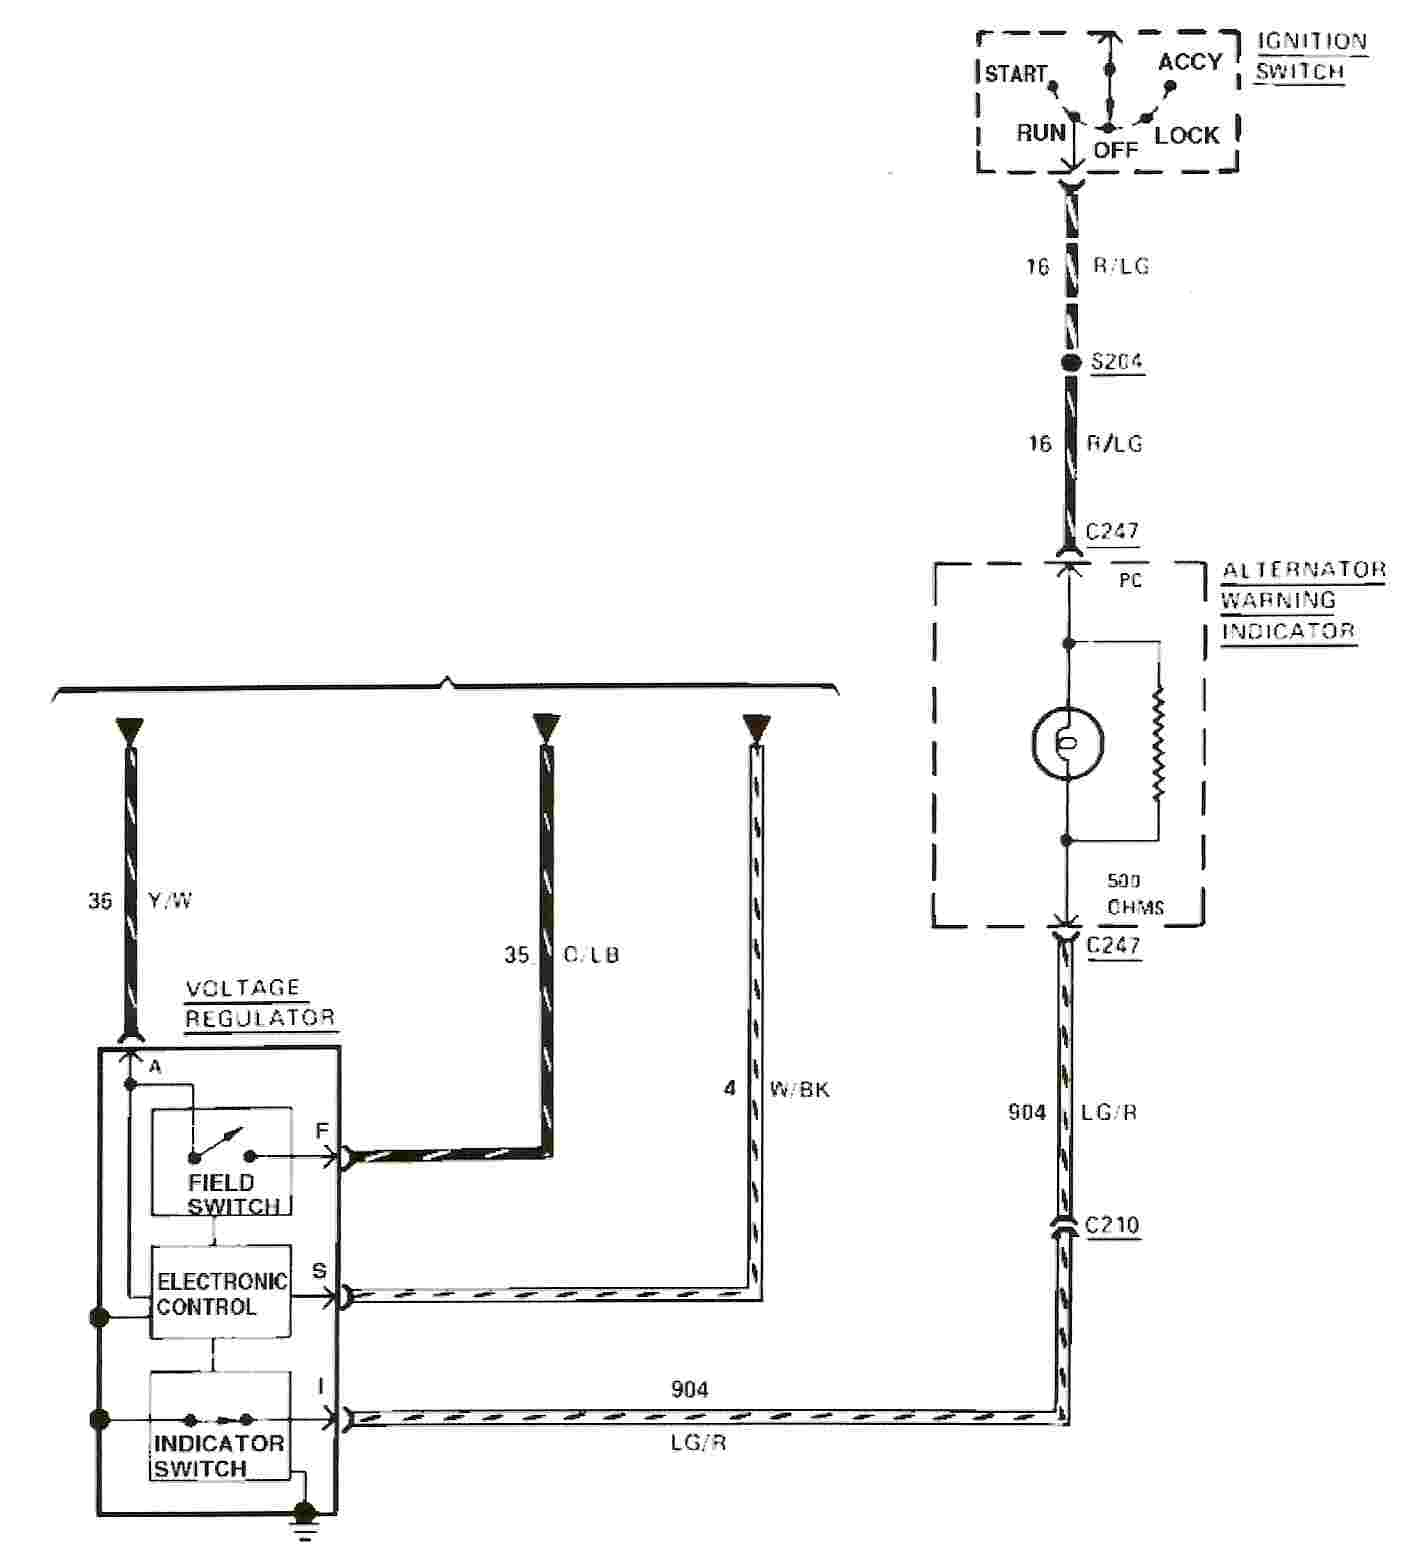 1984 Mustang Radio Wiring Data Diagrams 1980 Diagram Svo 1995 F250 Convertible